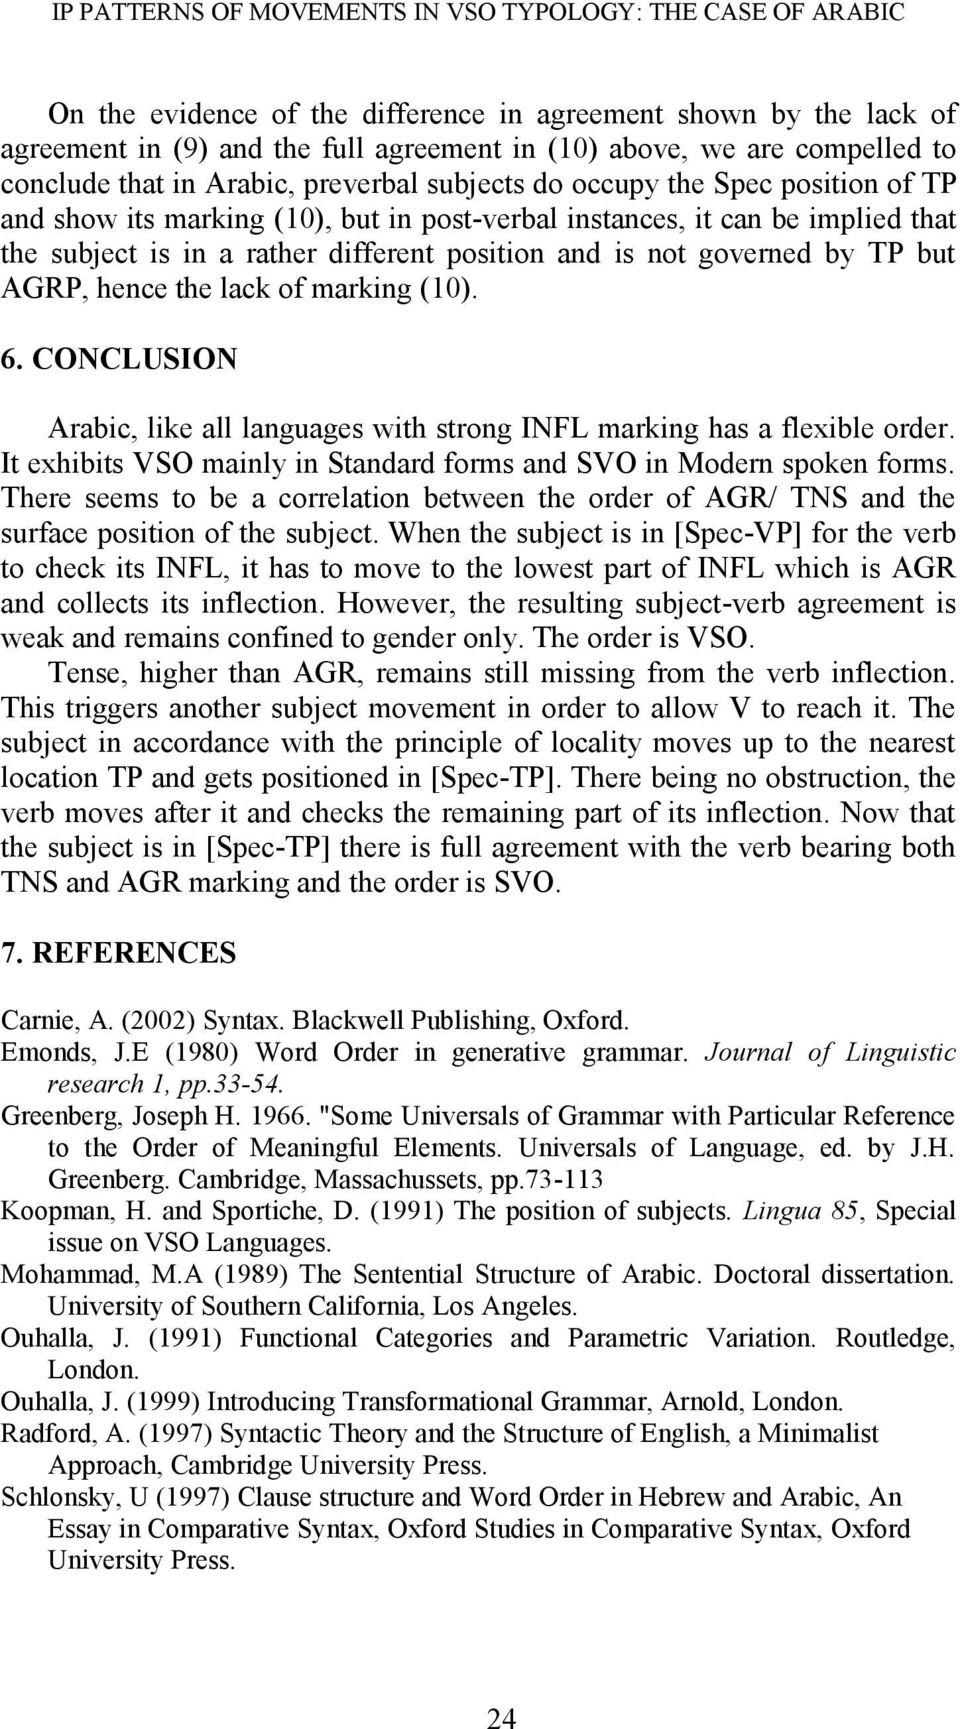 different position and is not governed by TP but AGRP, hence the lack of marking (10). 6. CONCLUSION Arabic, like all languages with strong INFL marking has a flexible order.